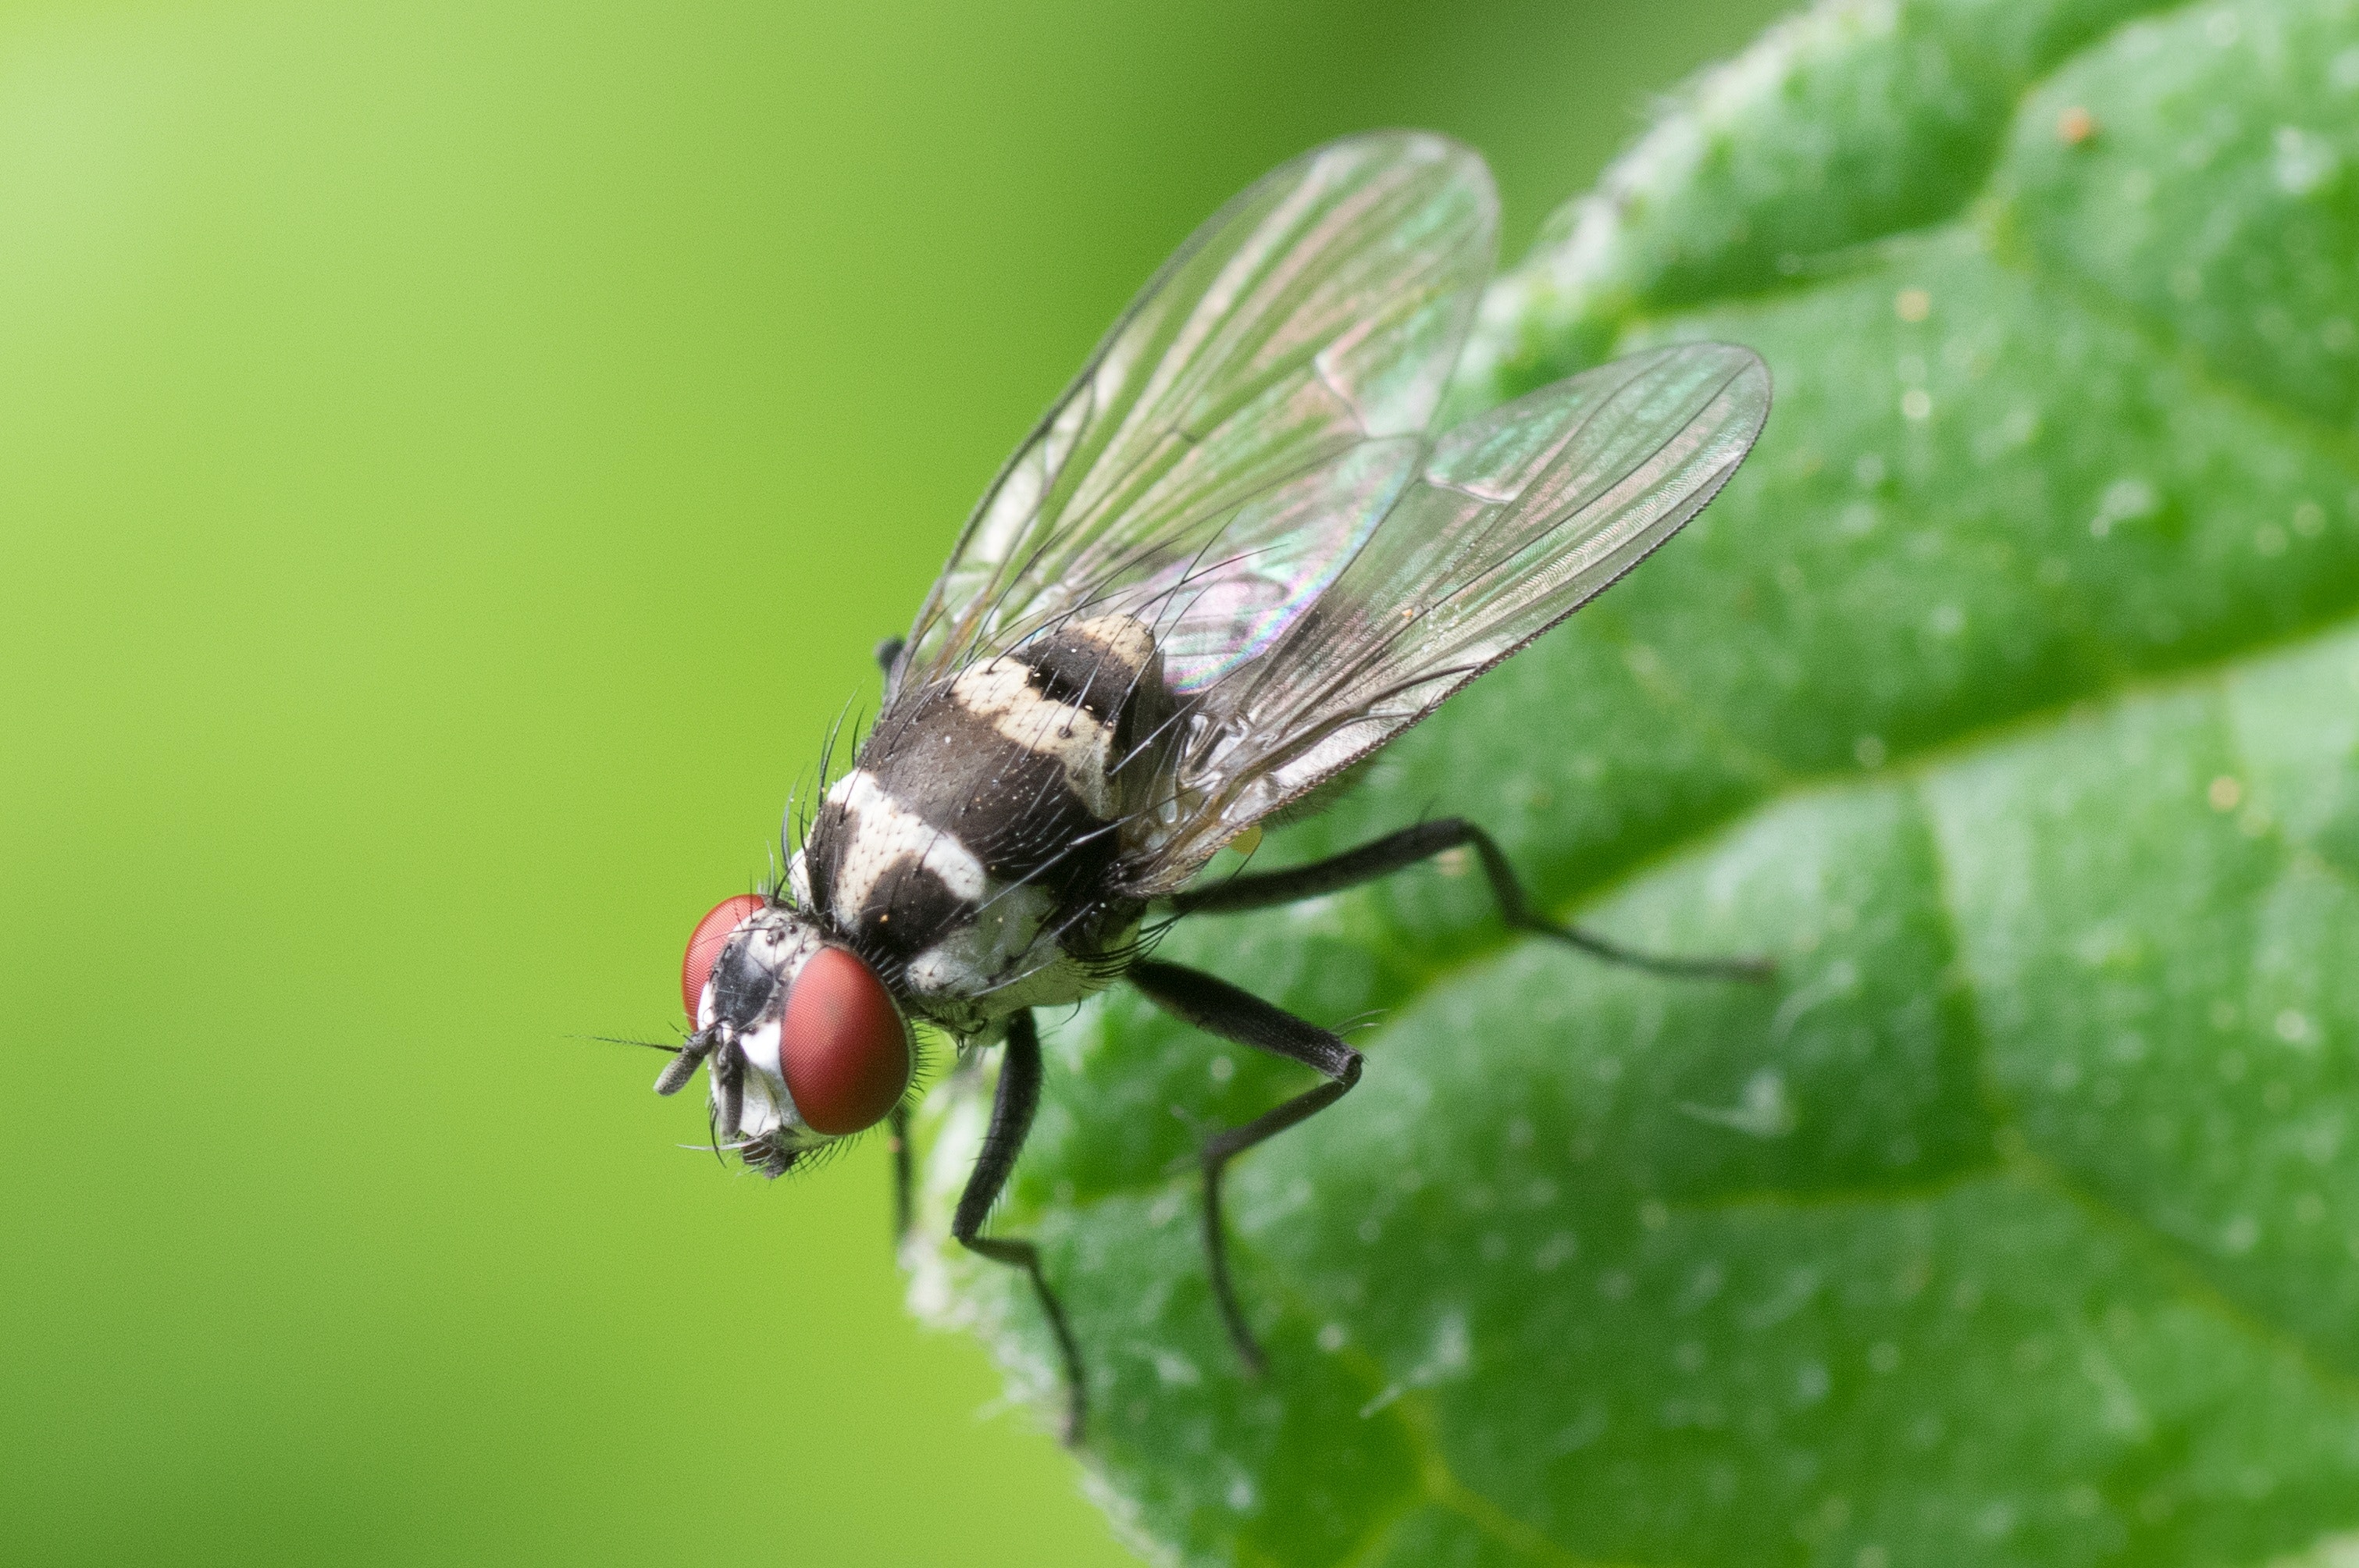 Fruit Flies Make Great Hearing Loss Test Subjects